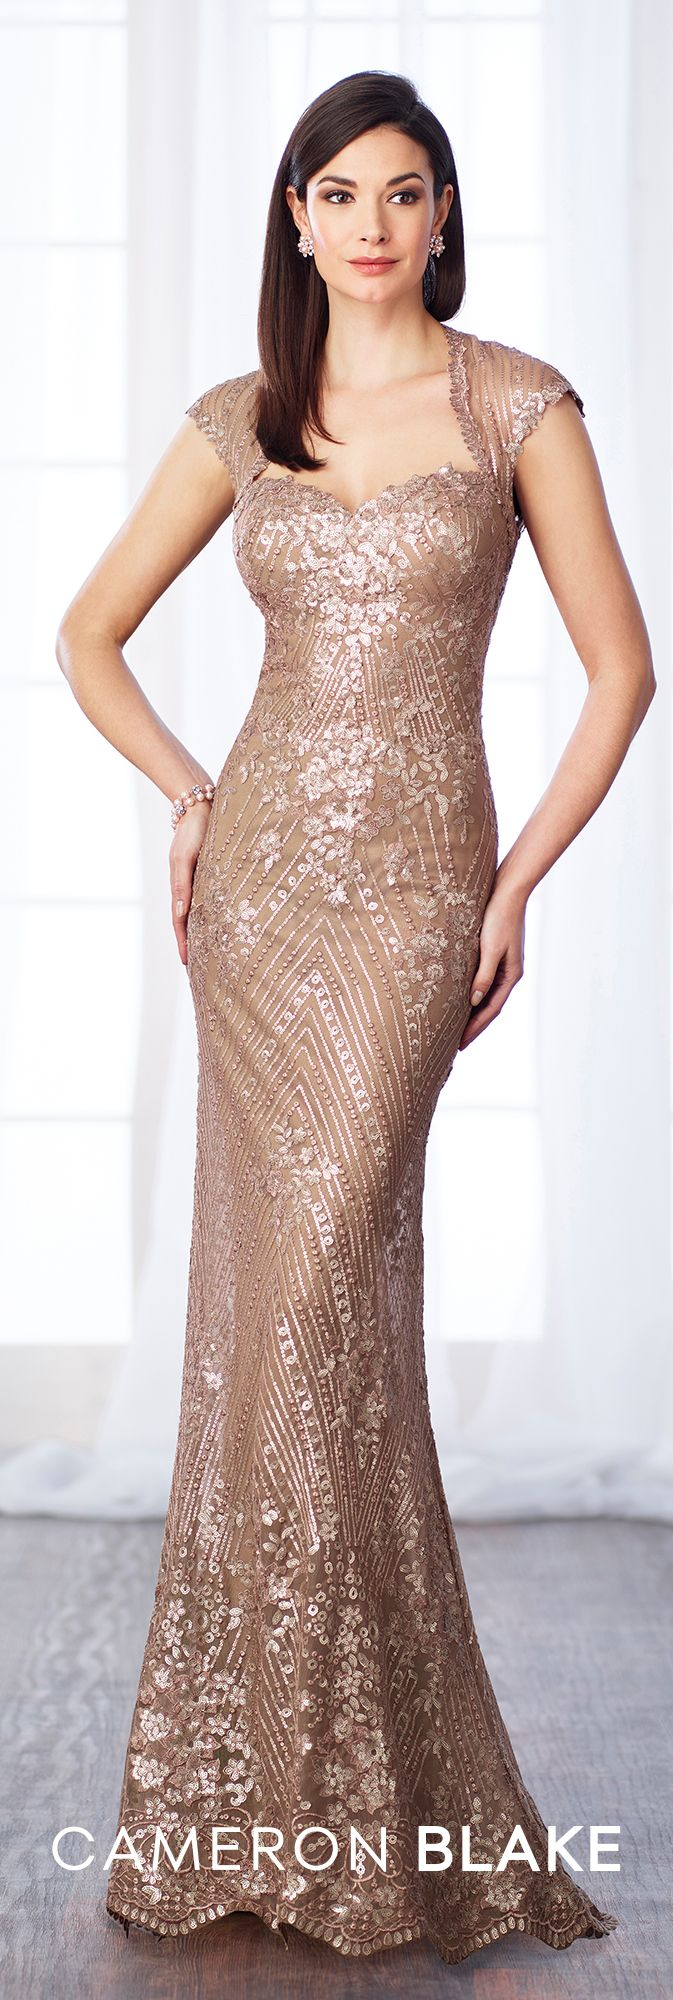 Formal Evening Gowns by Mon Cheri - Fall 2017 - Style No 217632 - dark champagne sequin lace and chiffon fit and flare evening dress with cap sleeves